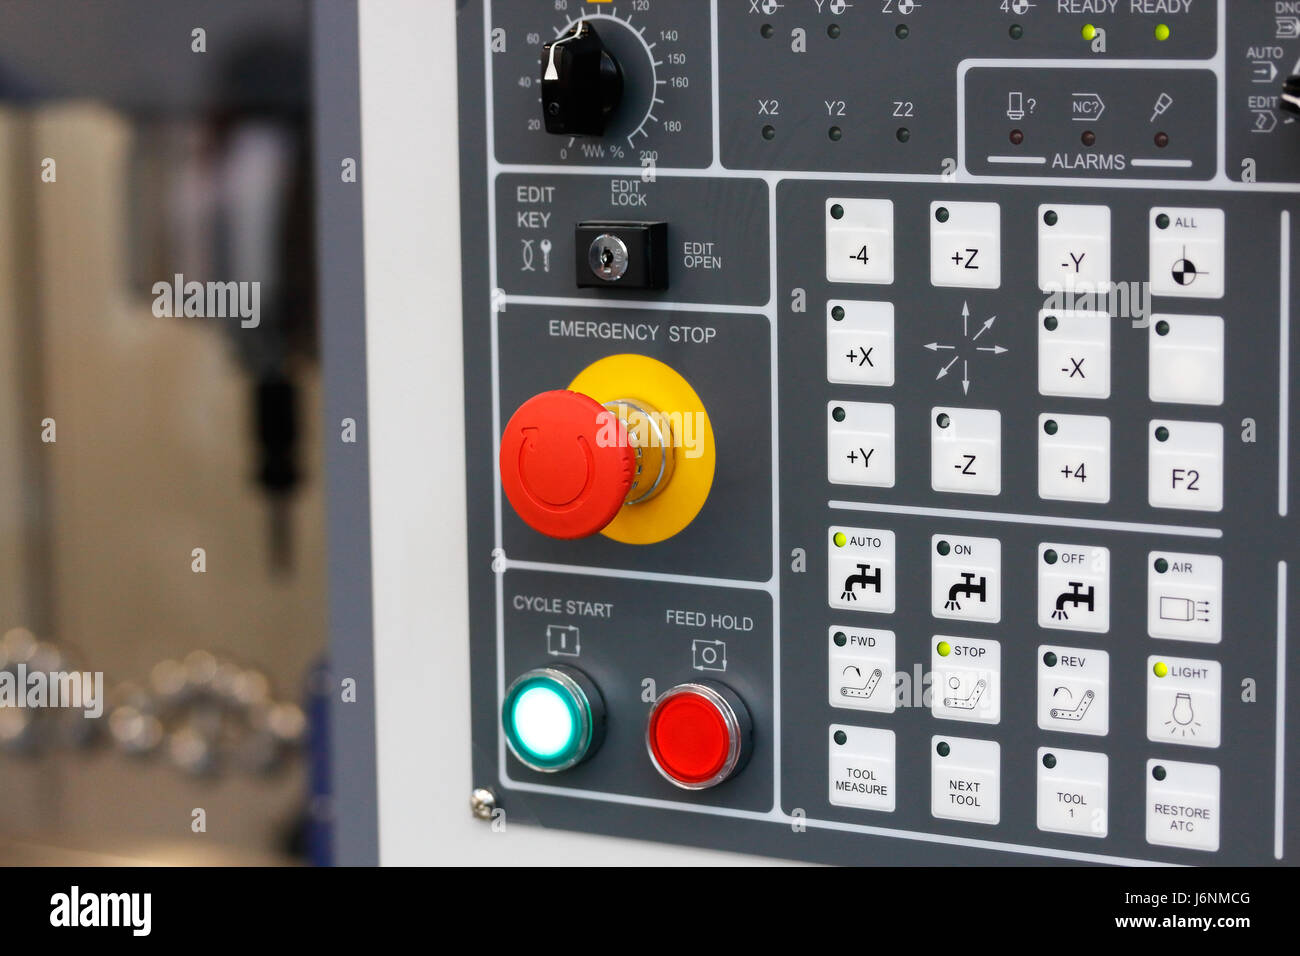 Control panel of cnc milling center. Selective focus. - Stock Image